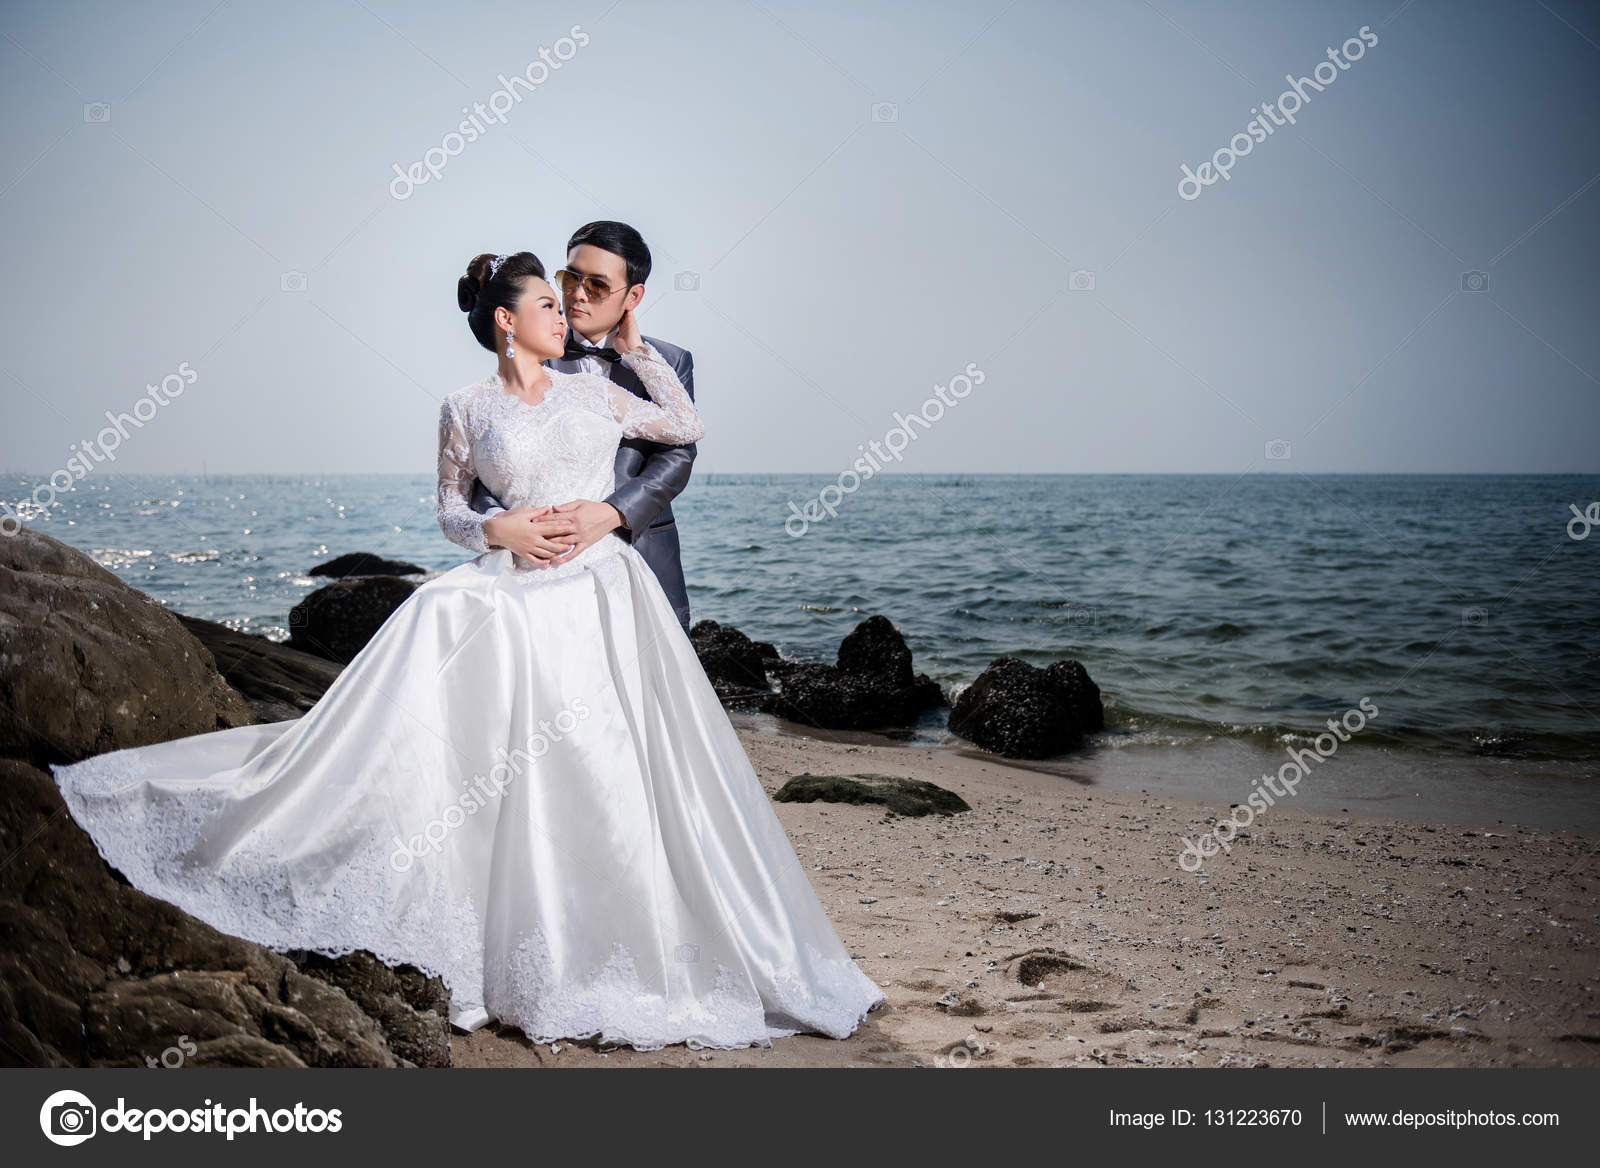 Asian couple wearing wedding dress and suit for beach wedding ce ...